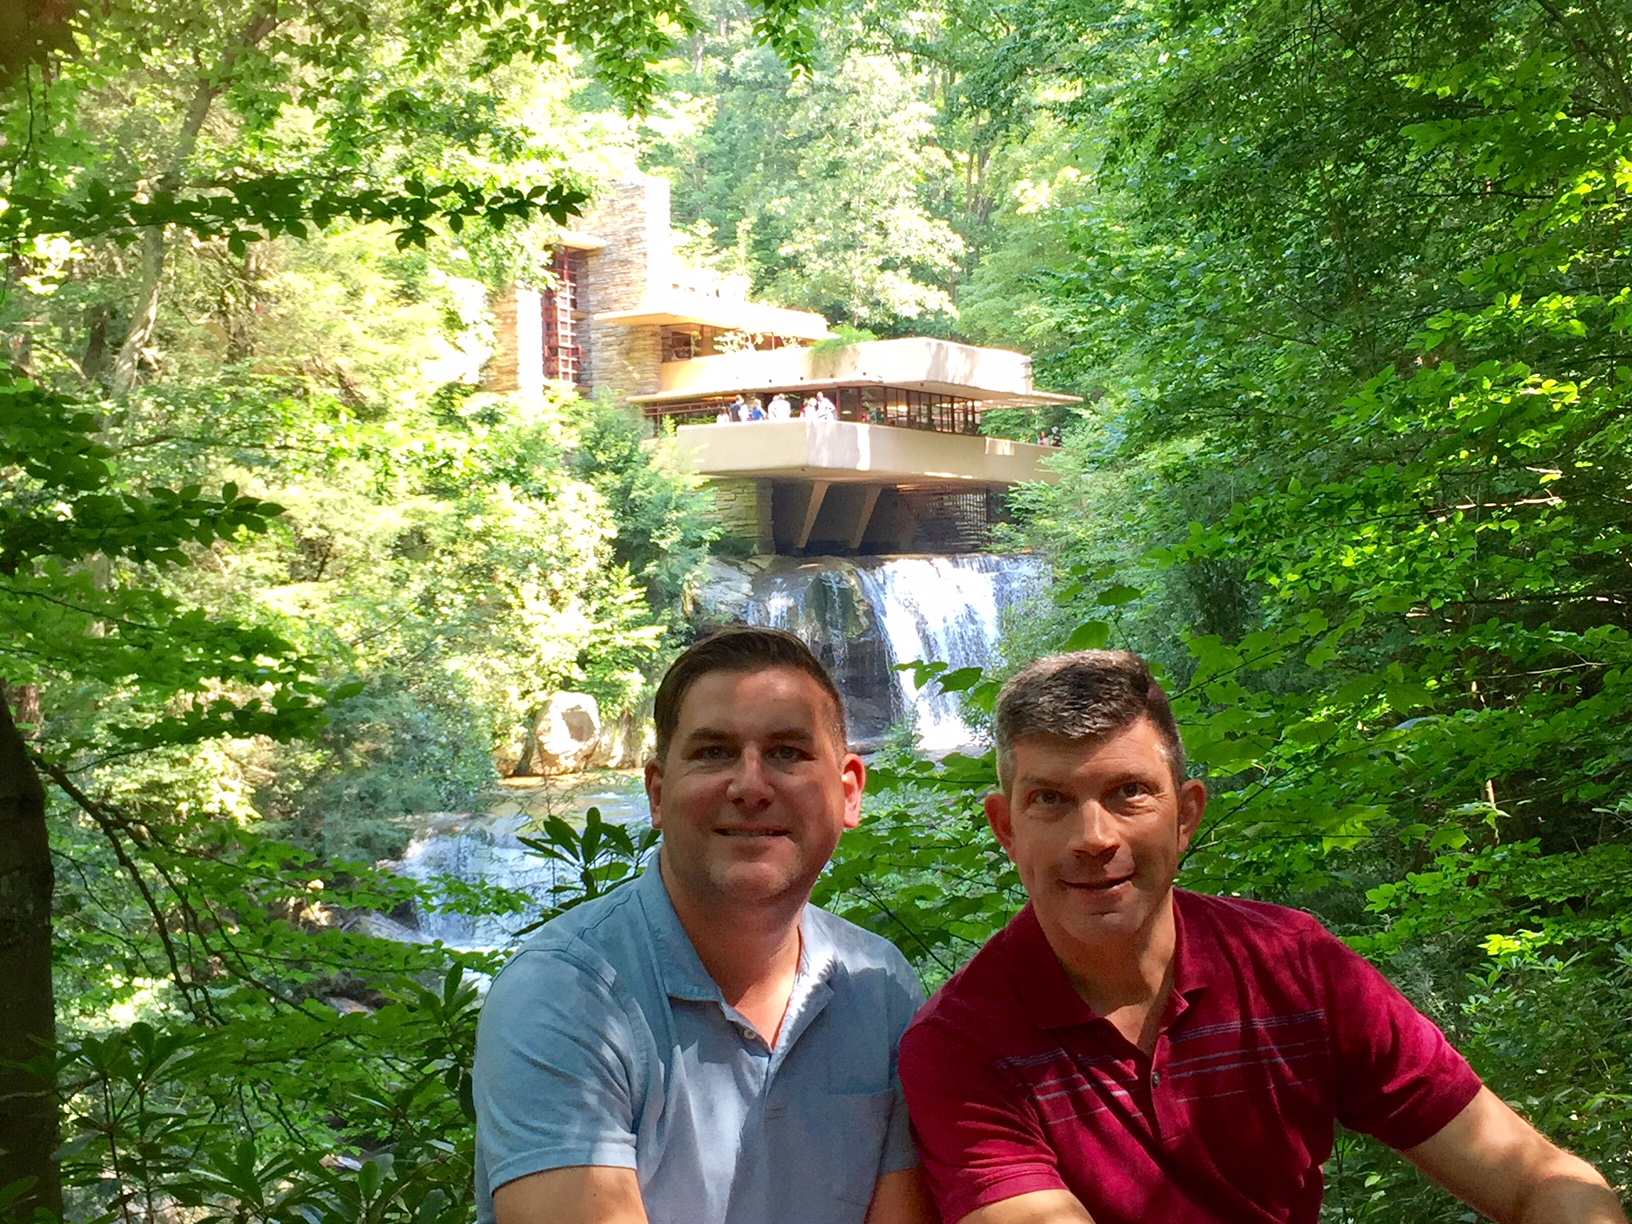 The overlook at Fallingwater